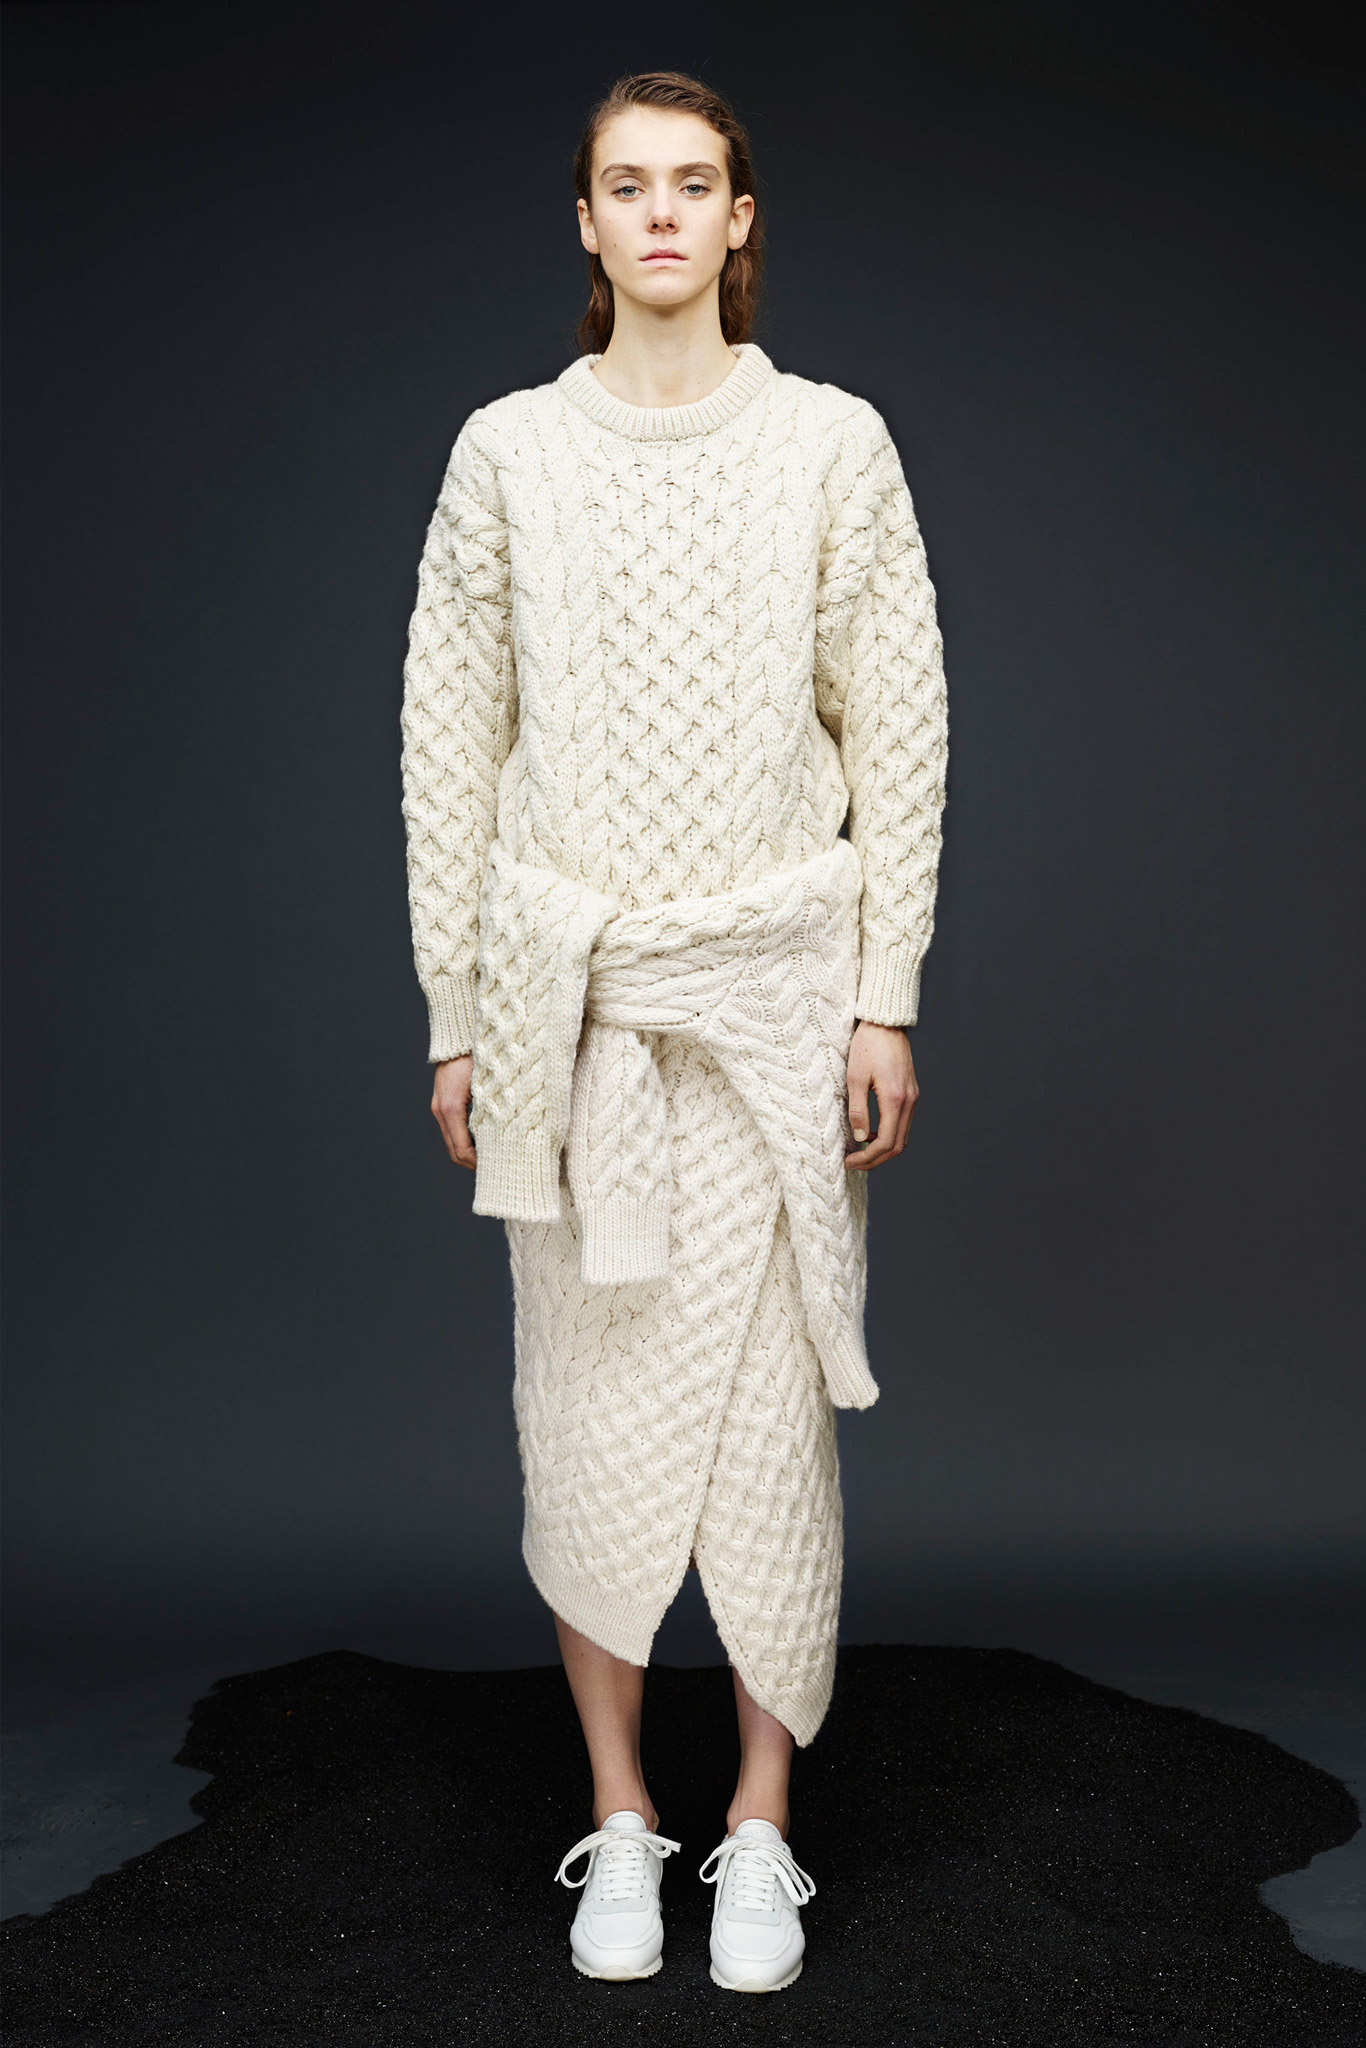 Trini | Joseph pre-fall 2015 collection